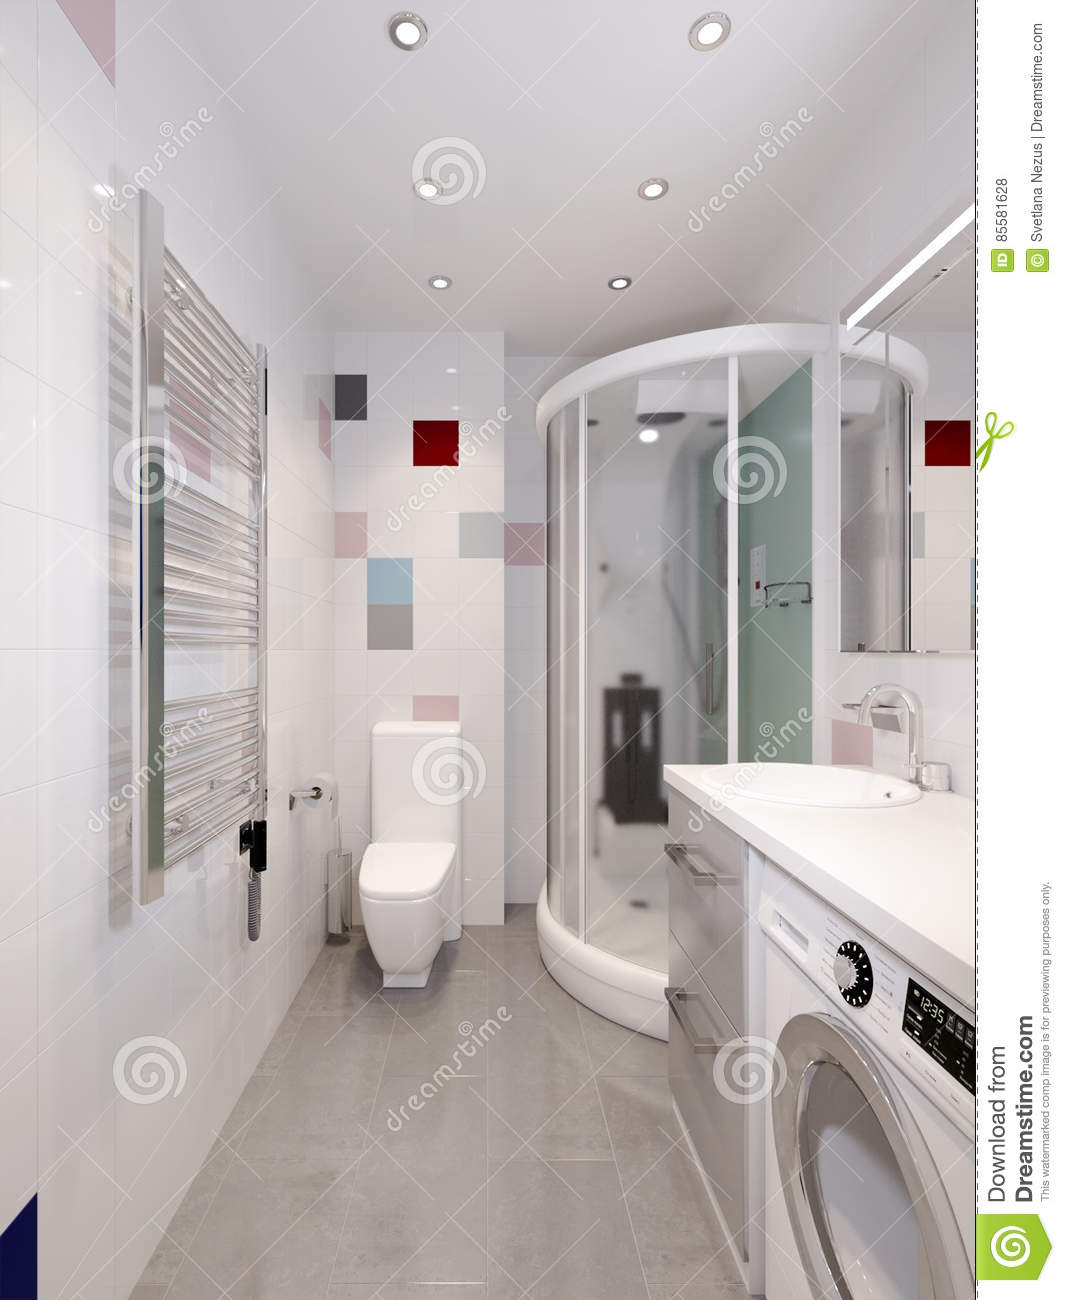 colors for the bathroom modern bathroom interior stock illustration image of 17815